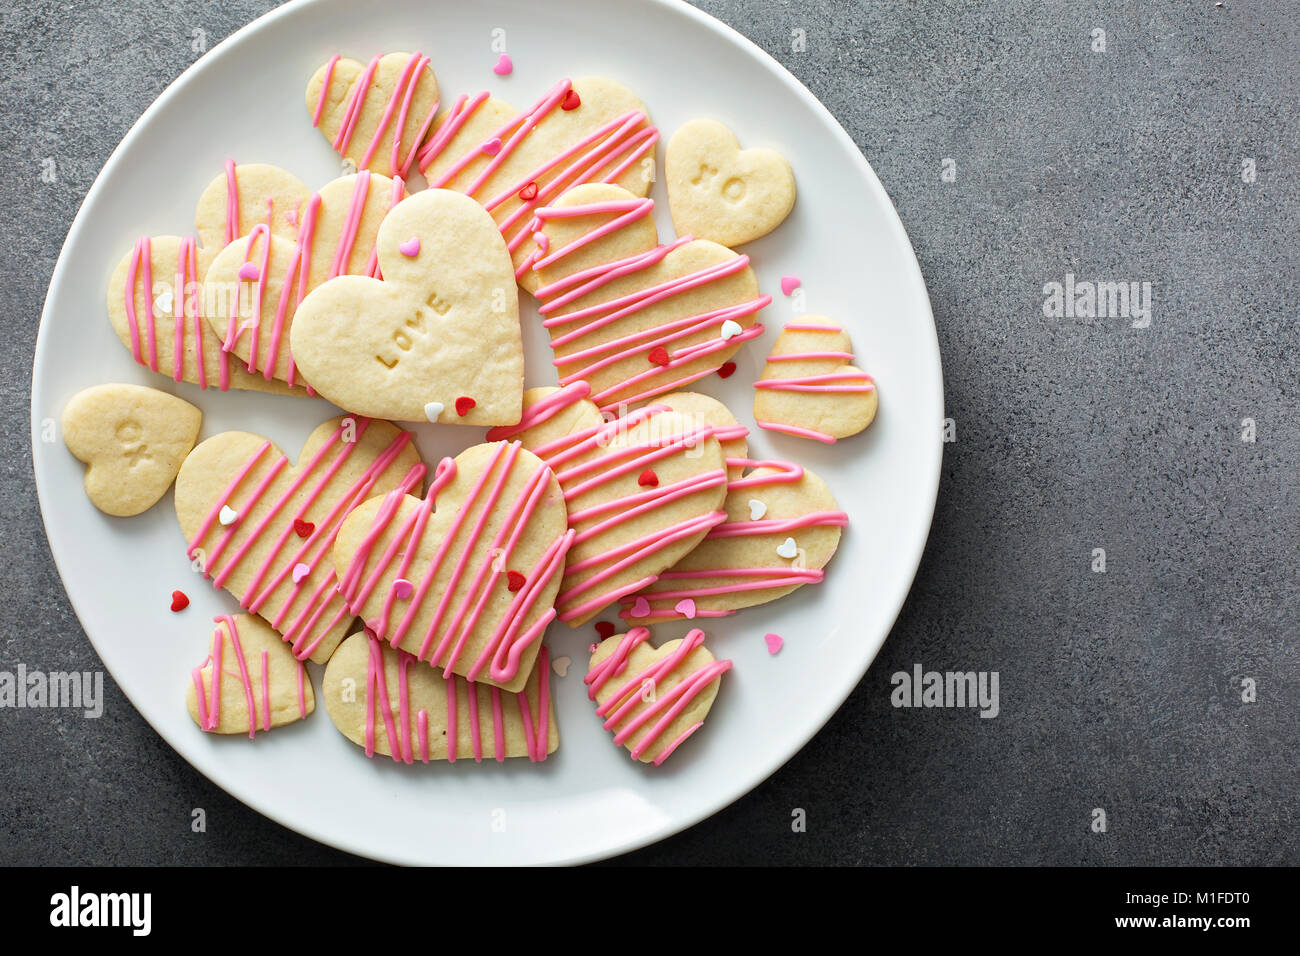 Vanilla Sugar Cut Out Cookies With Pink Glaze And Sprinkles For